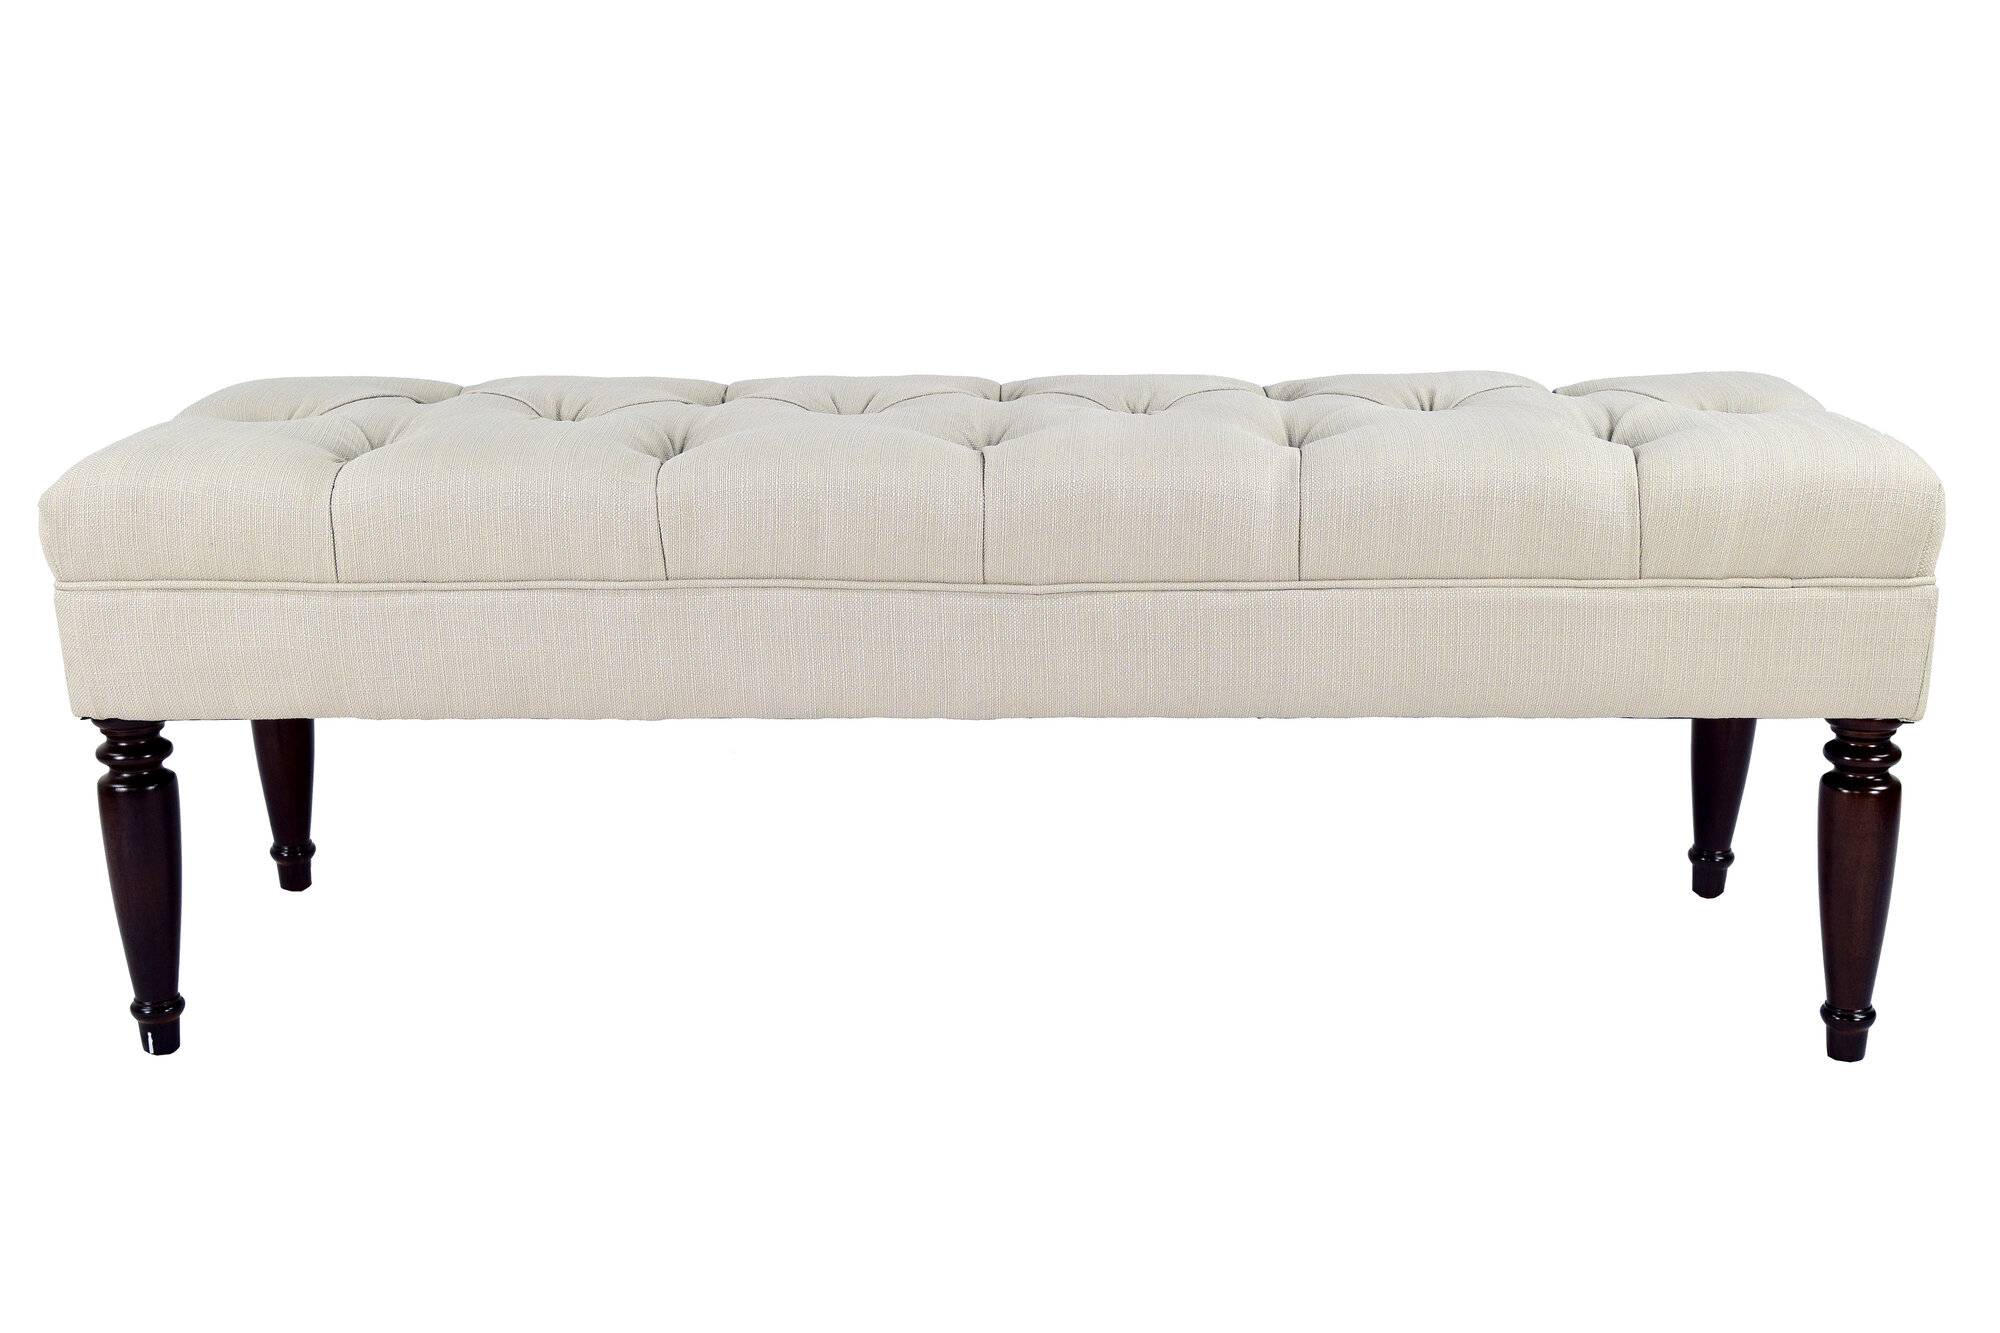 Mjl furniture sachi upholstered bedroom bench ebay for Bedroom upholstered bench